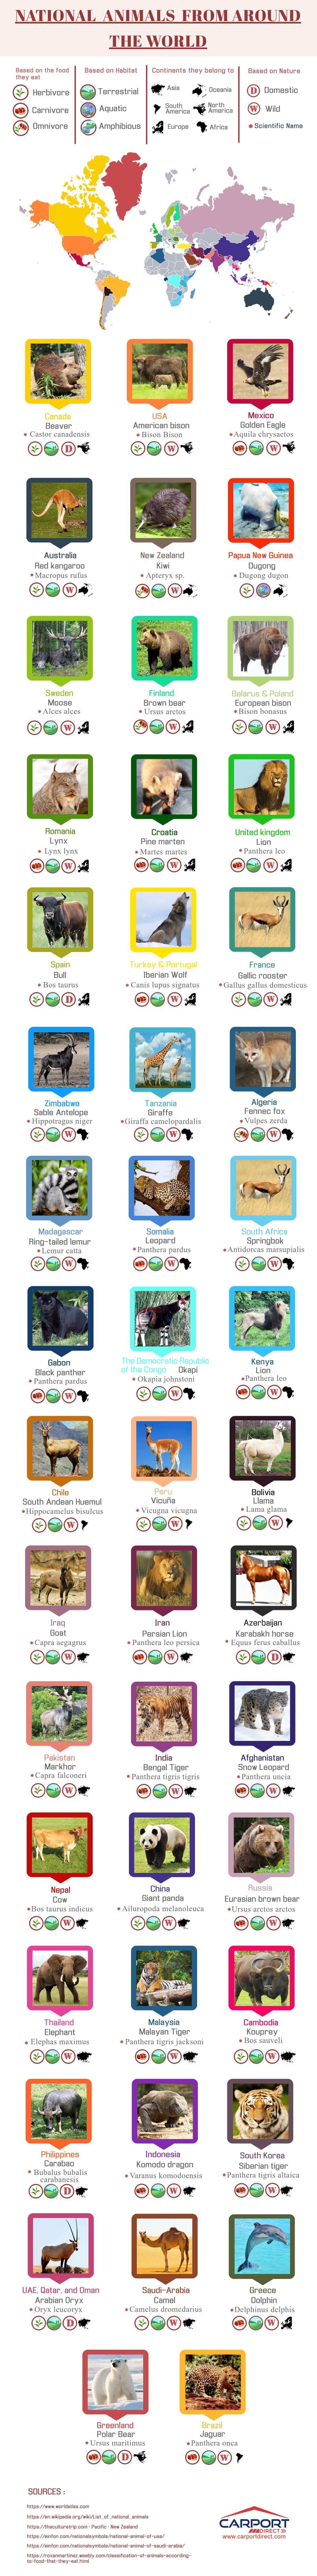 47 of the World's Best Loved 'National' Animals - Infographic